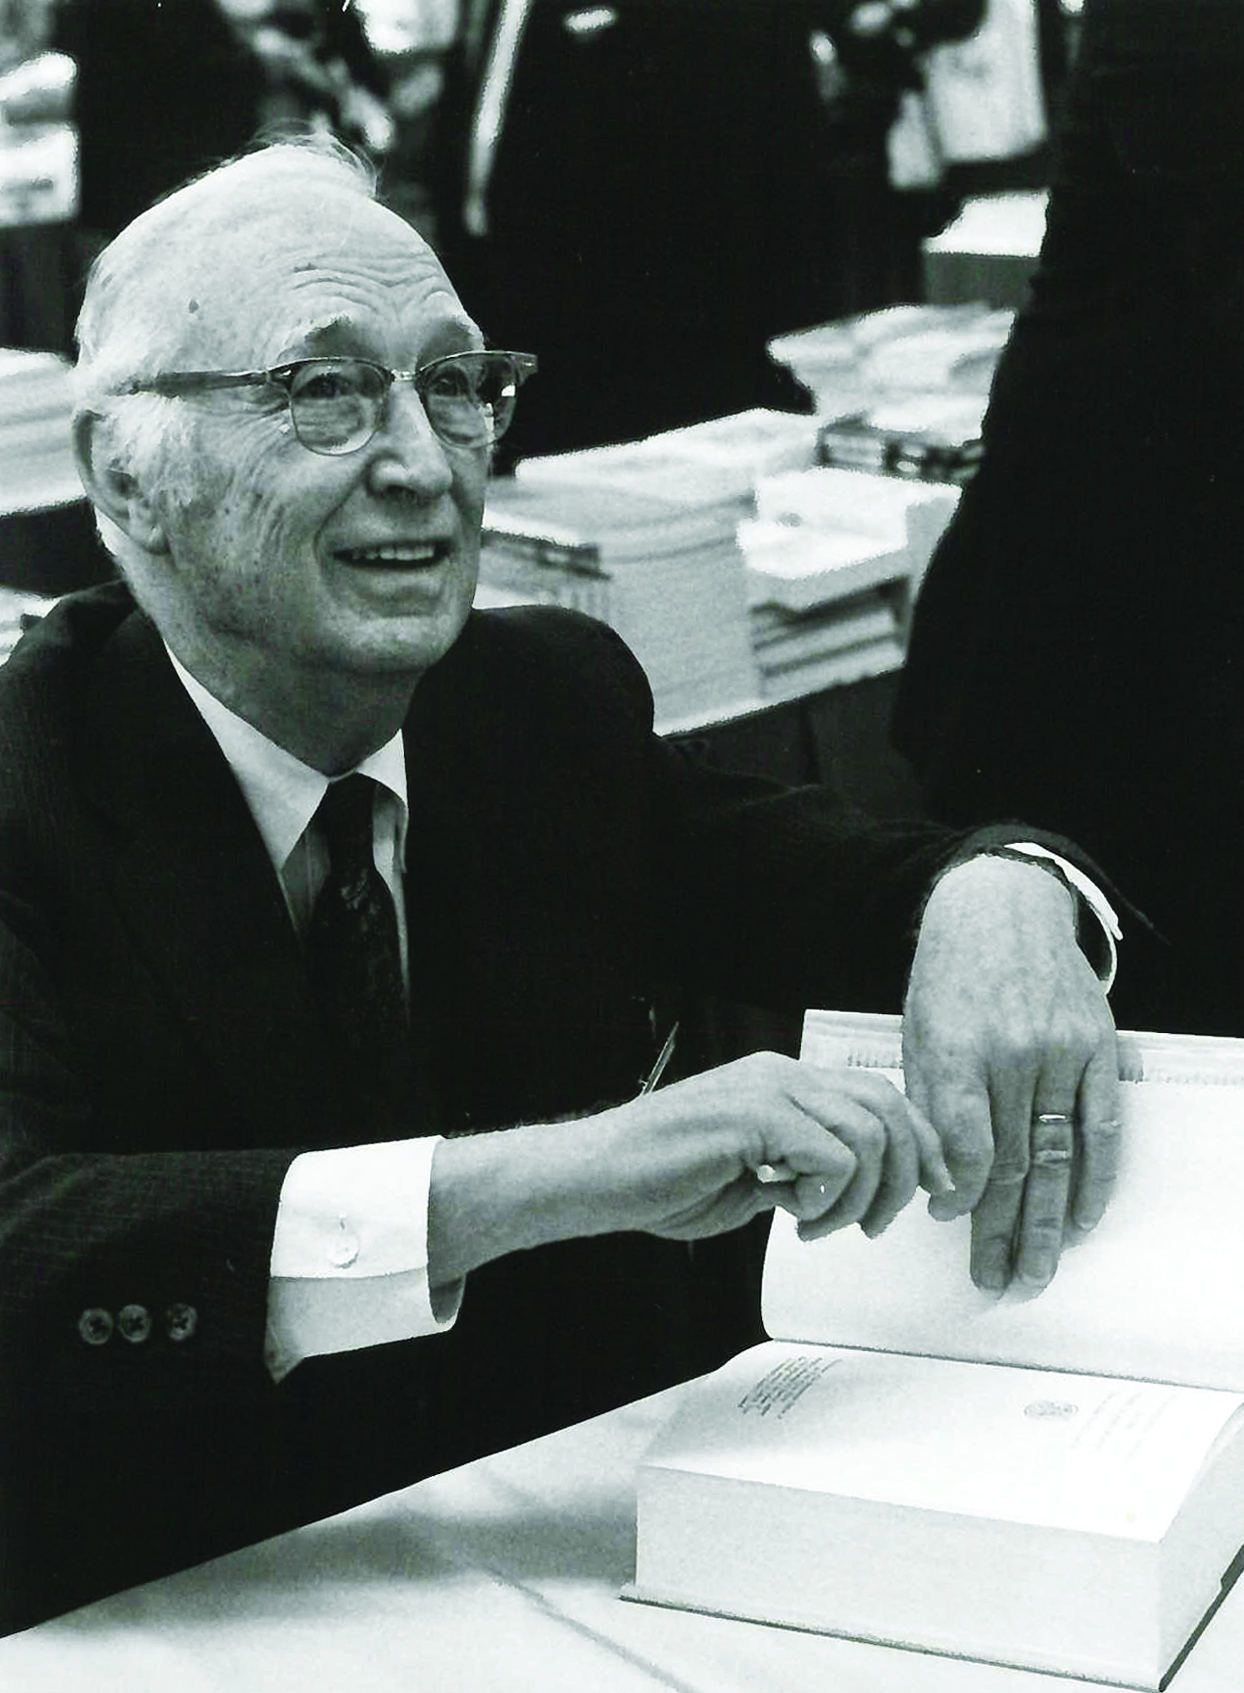 An undated publicity photo shows the Rev. Albert C. Outler autographing books. Outler was chosen to preach for the uniting service of the 1968 Uniting Conference, which saw the creation of The United Methodist Church. Photo courtesy of Steve Beard, Editor in Chief, Good News.